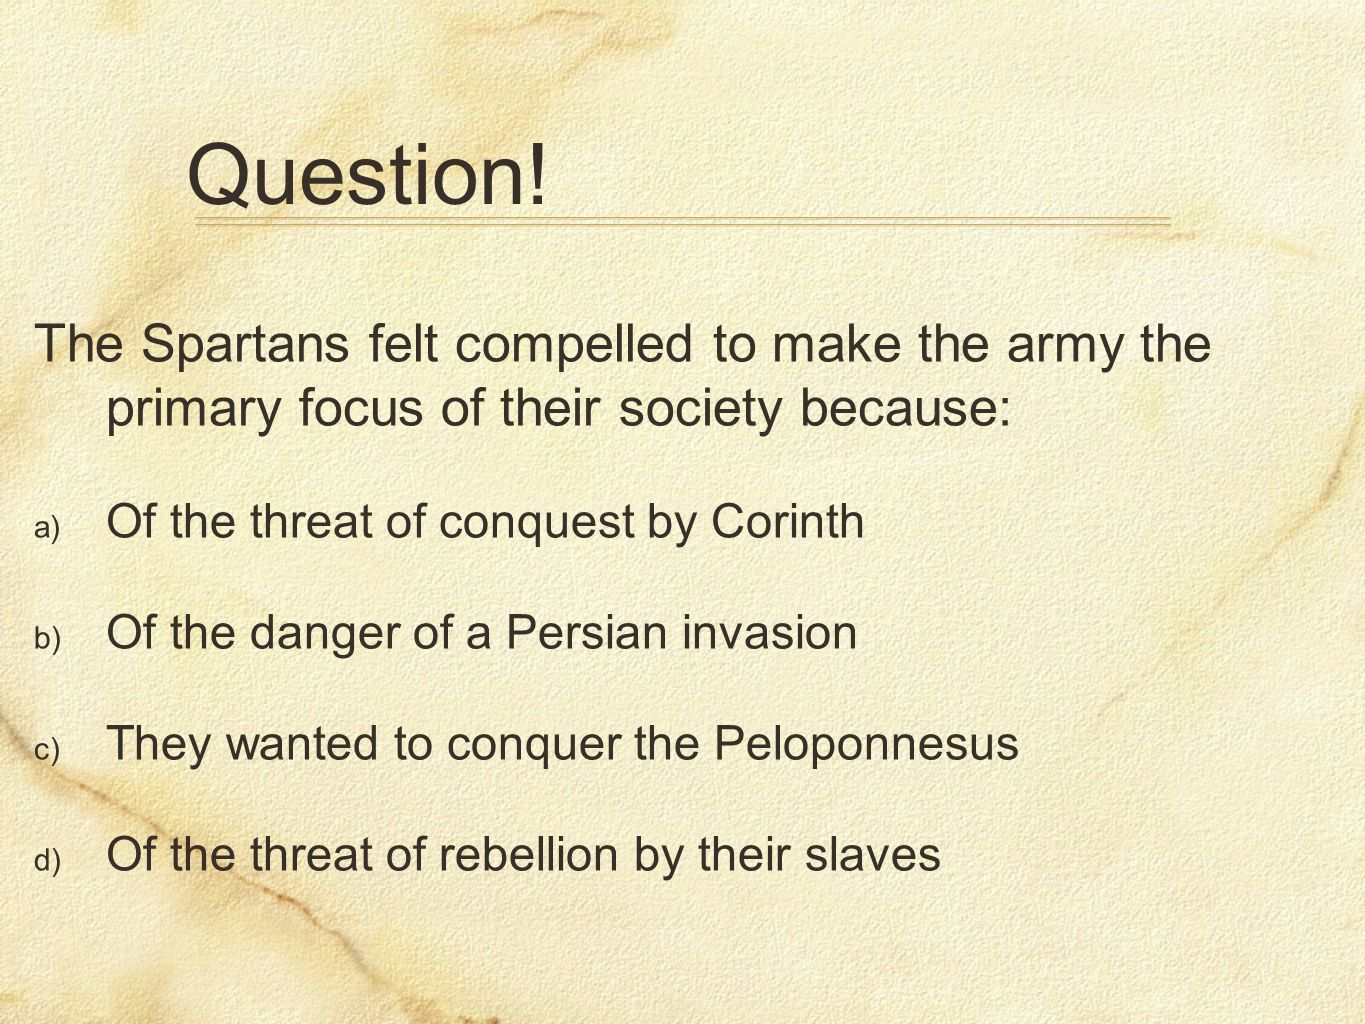 Question!The Spartans felt compelled to make the army the primary focus of their society because: Of the threat of conquest by Corinth.